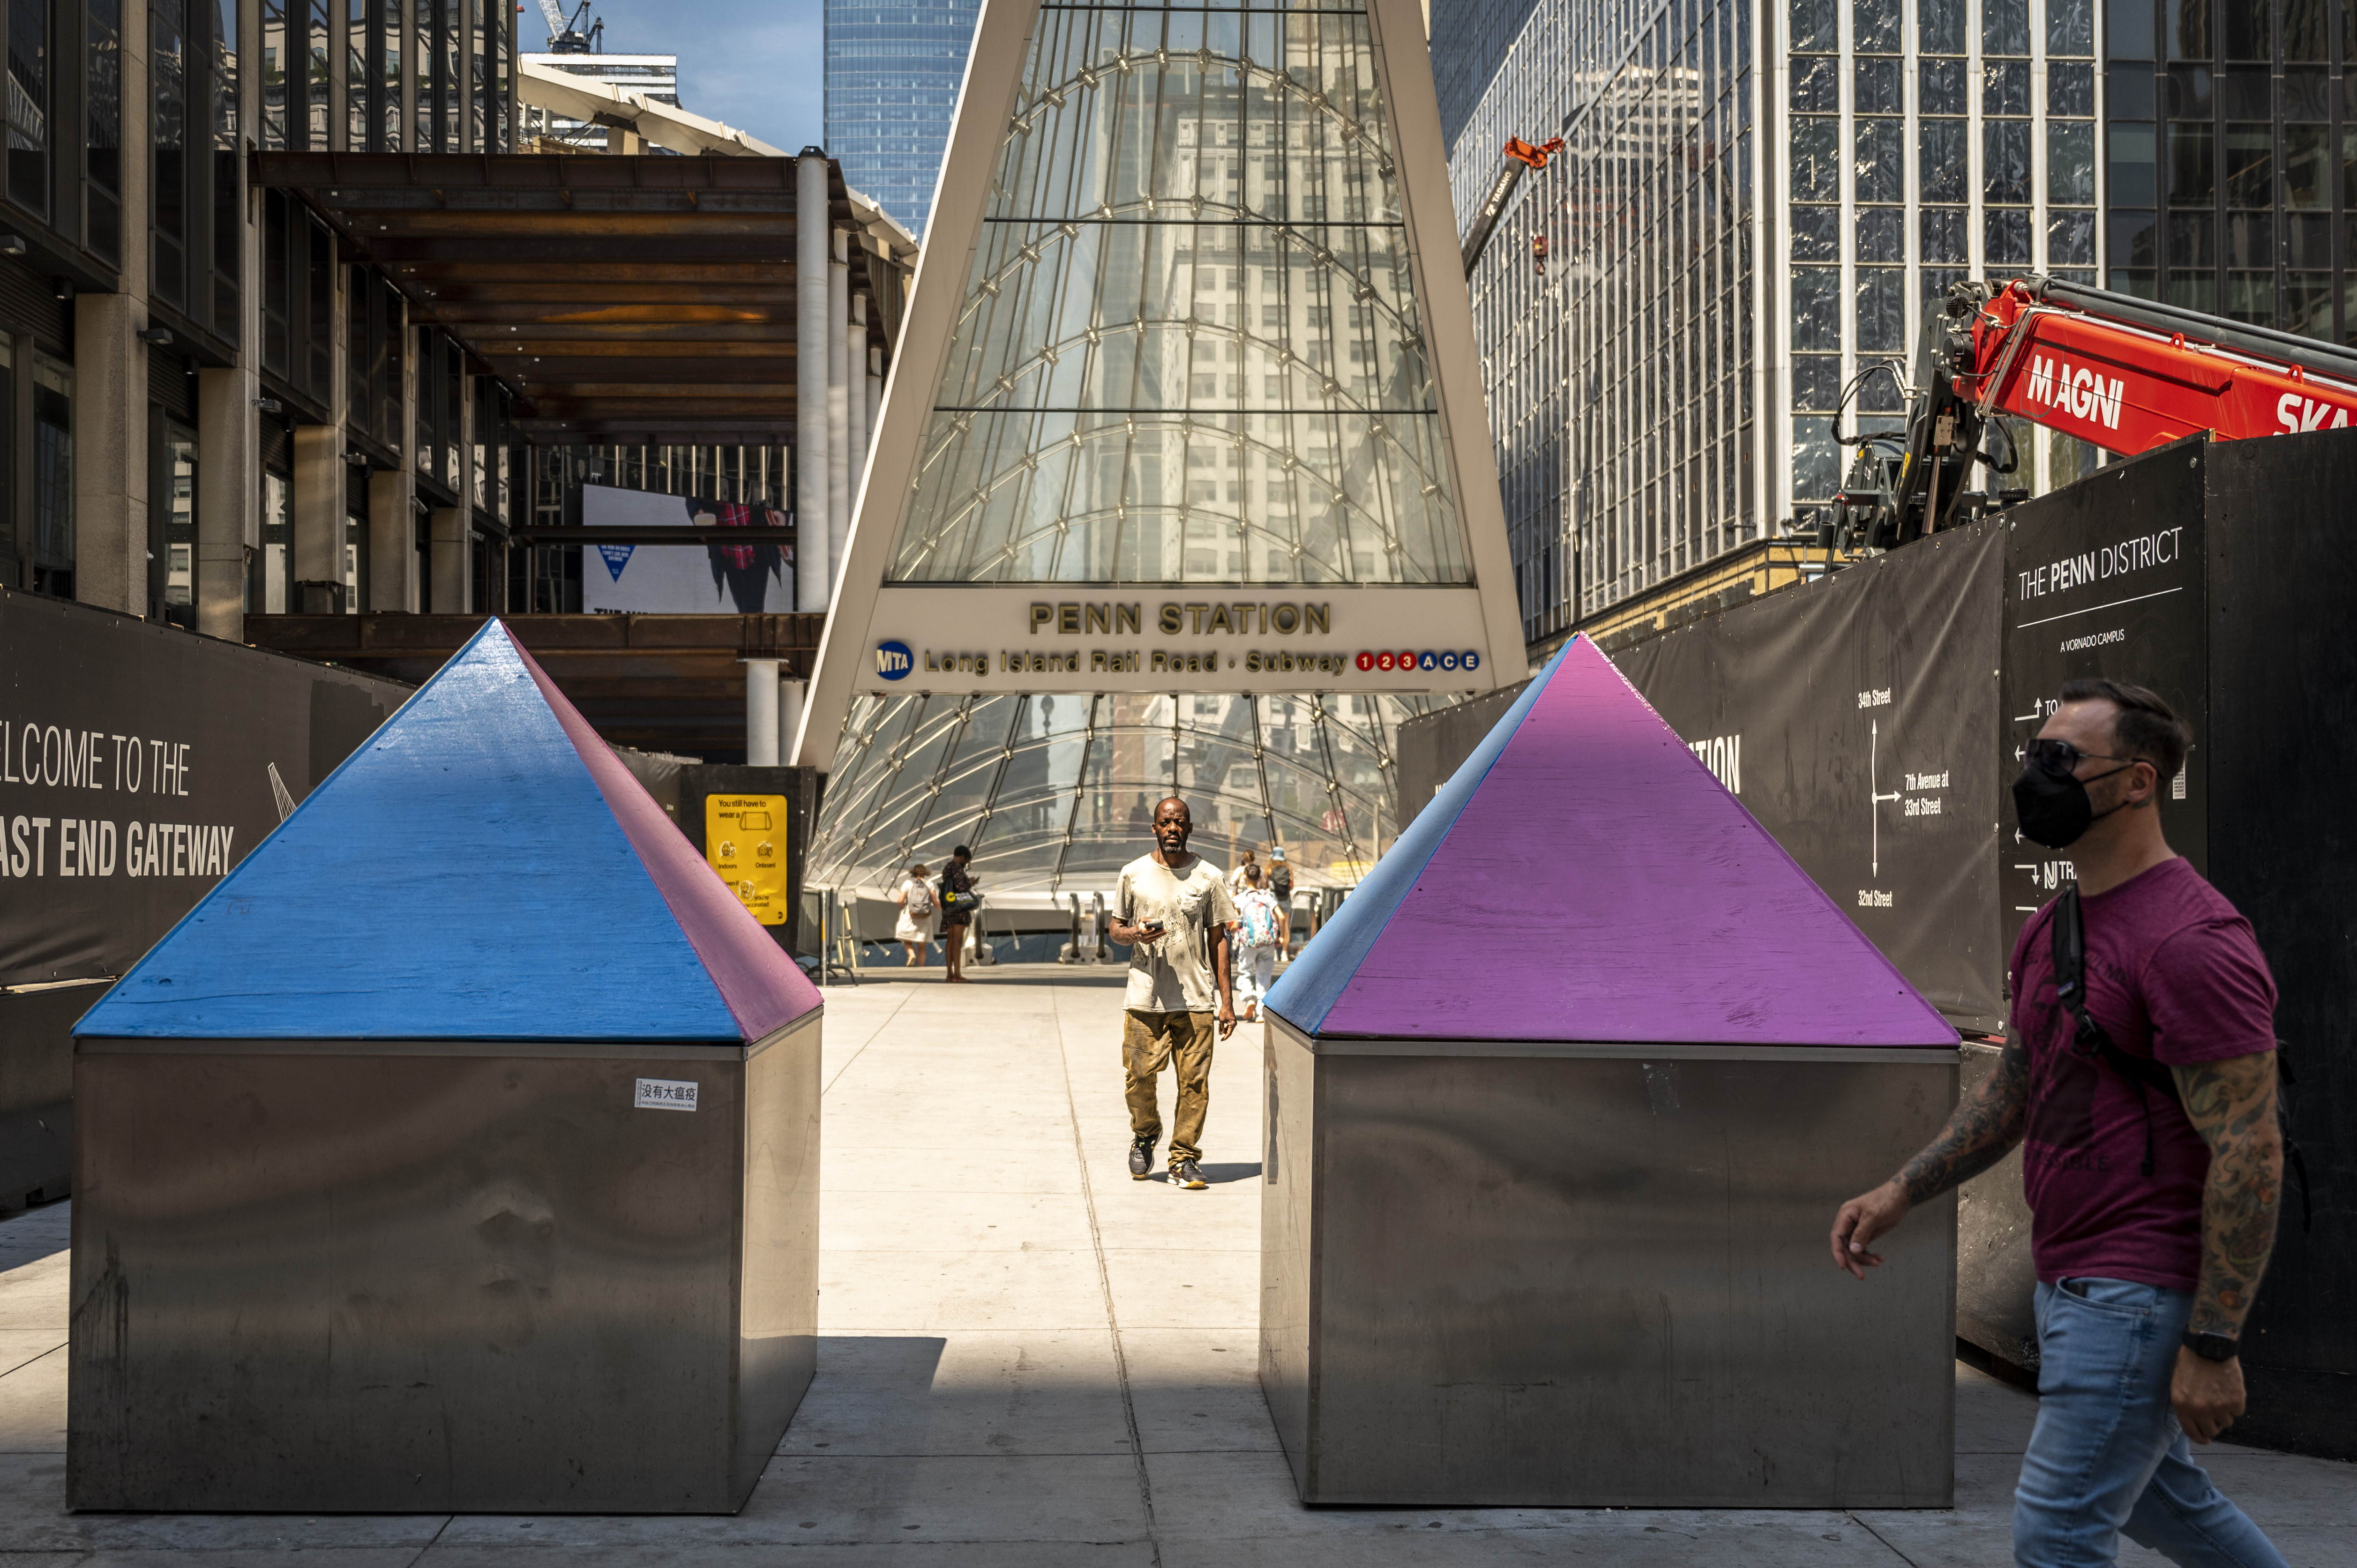 The colorful pyramids were recently added to the tops of bollards at the 33rd Street and 7th Avenue Penn Station to discourage lounging.